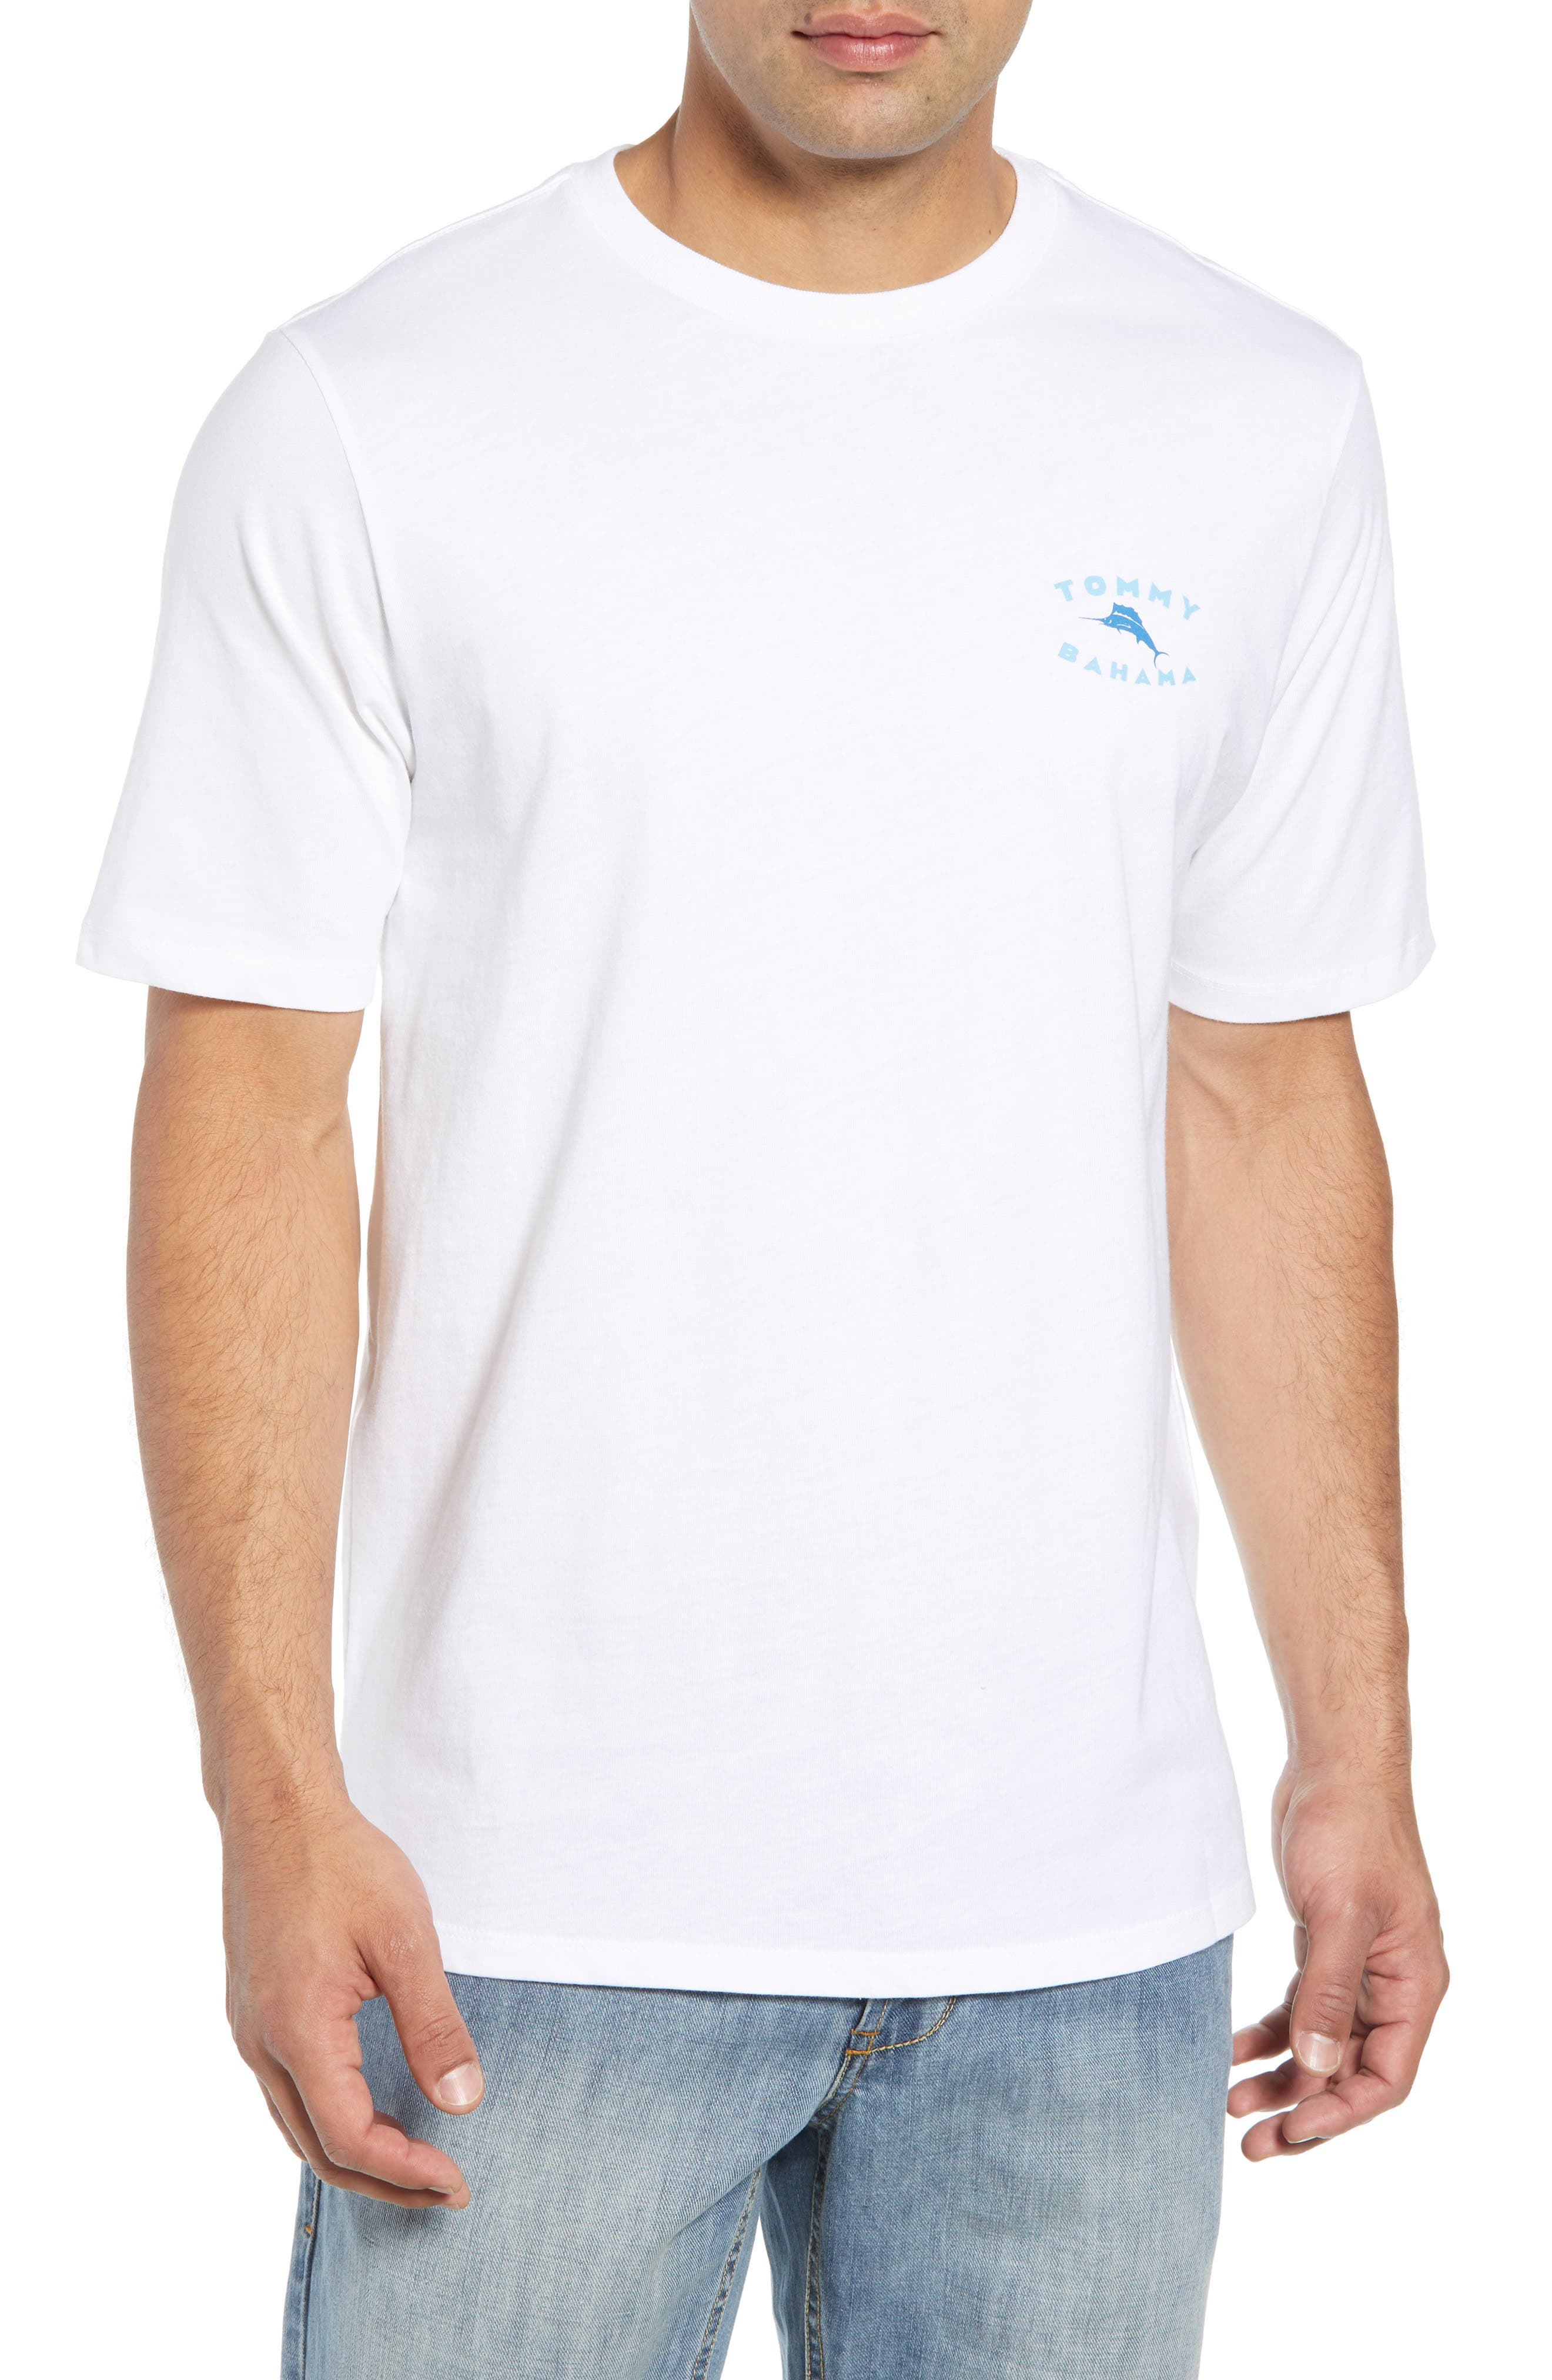 TOMMY BAHAMA,                             Complete Transparency T-Shirt,                             Main thumbnail 1, color,                             100